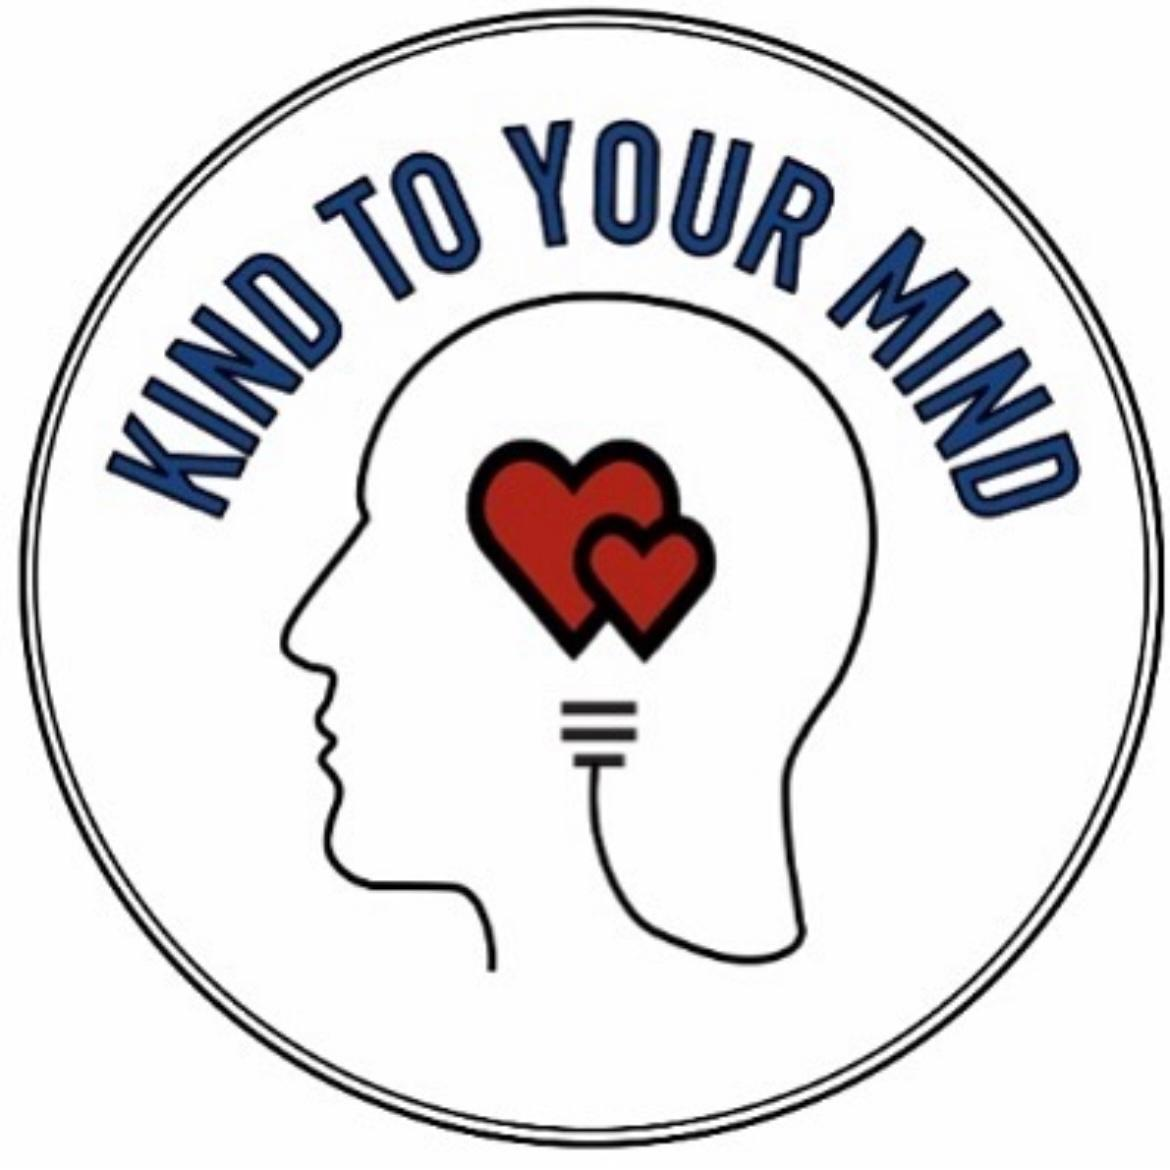 Read more about the article Wir präsentieren: der AK Kind To Your Mind